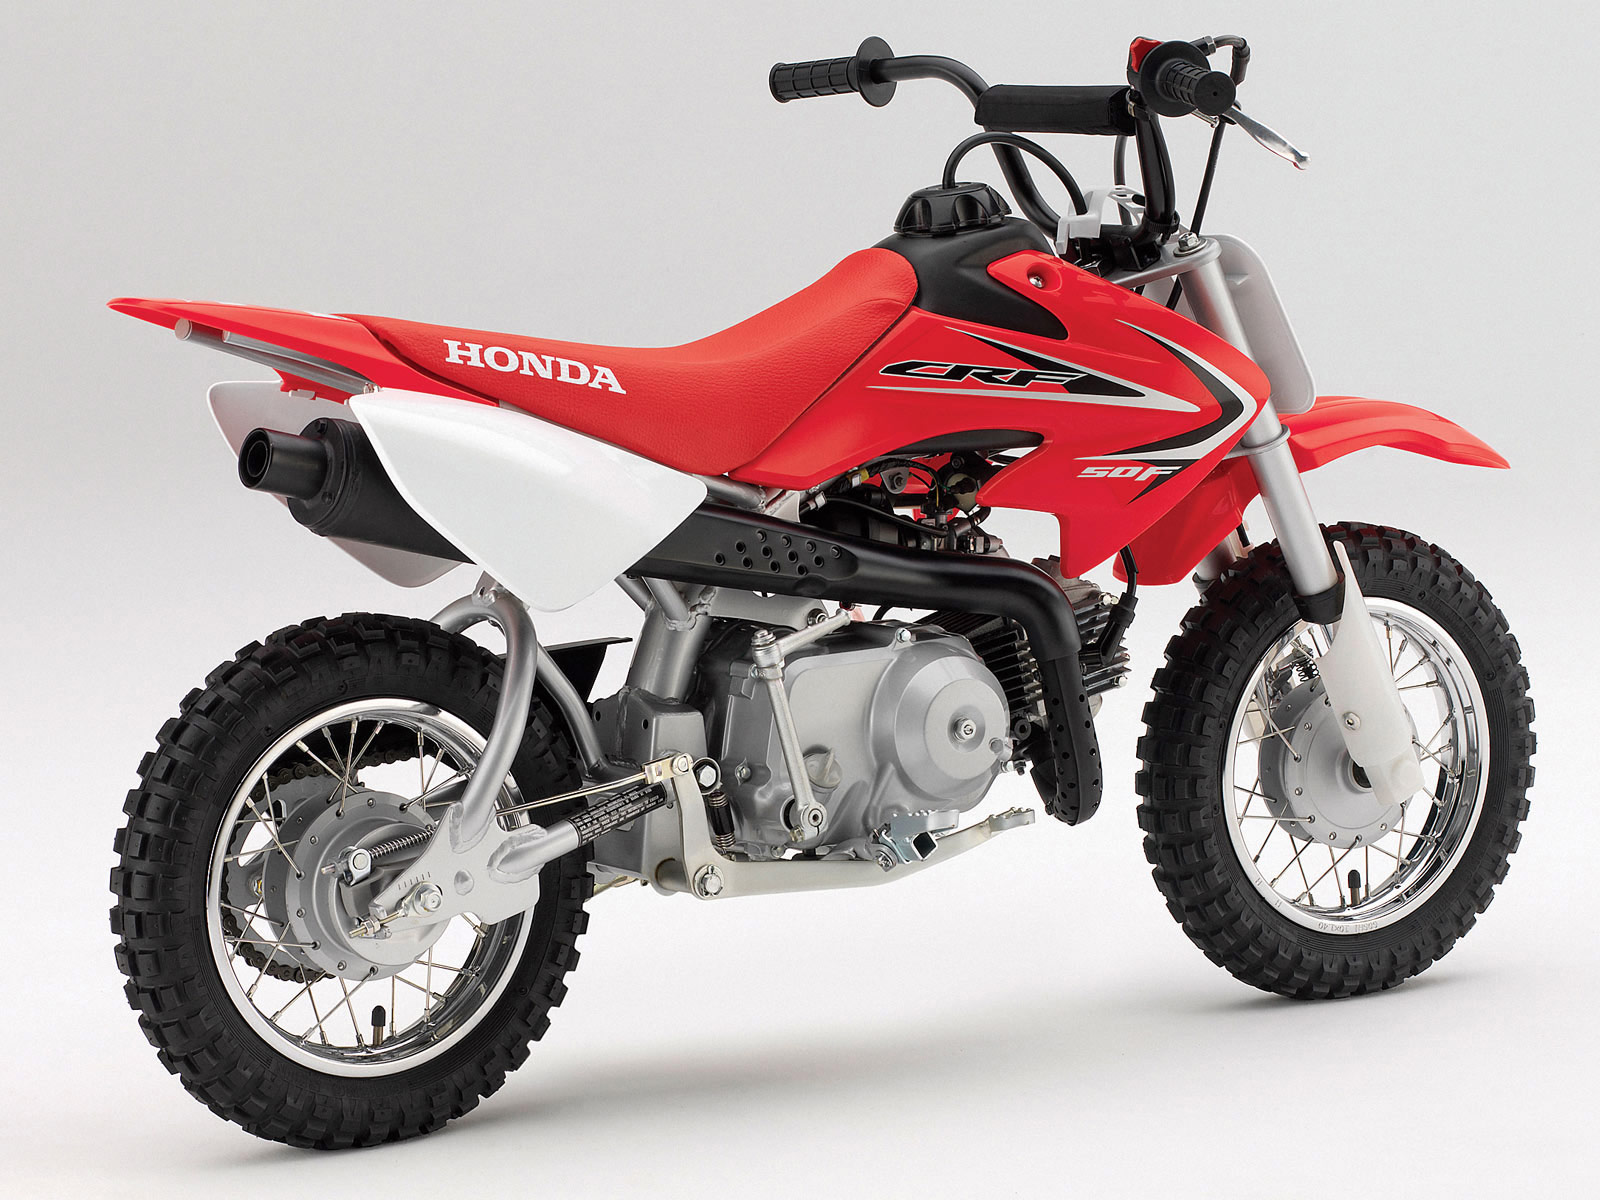 2011 Honda Crf50f Motorcycle Pictures Insurance